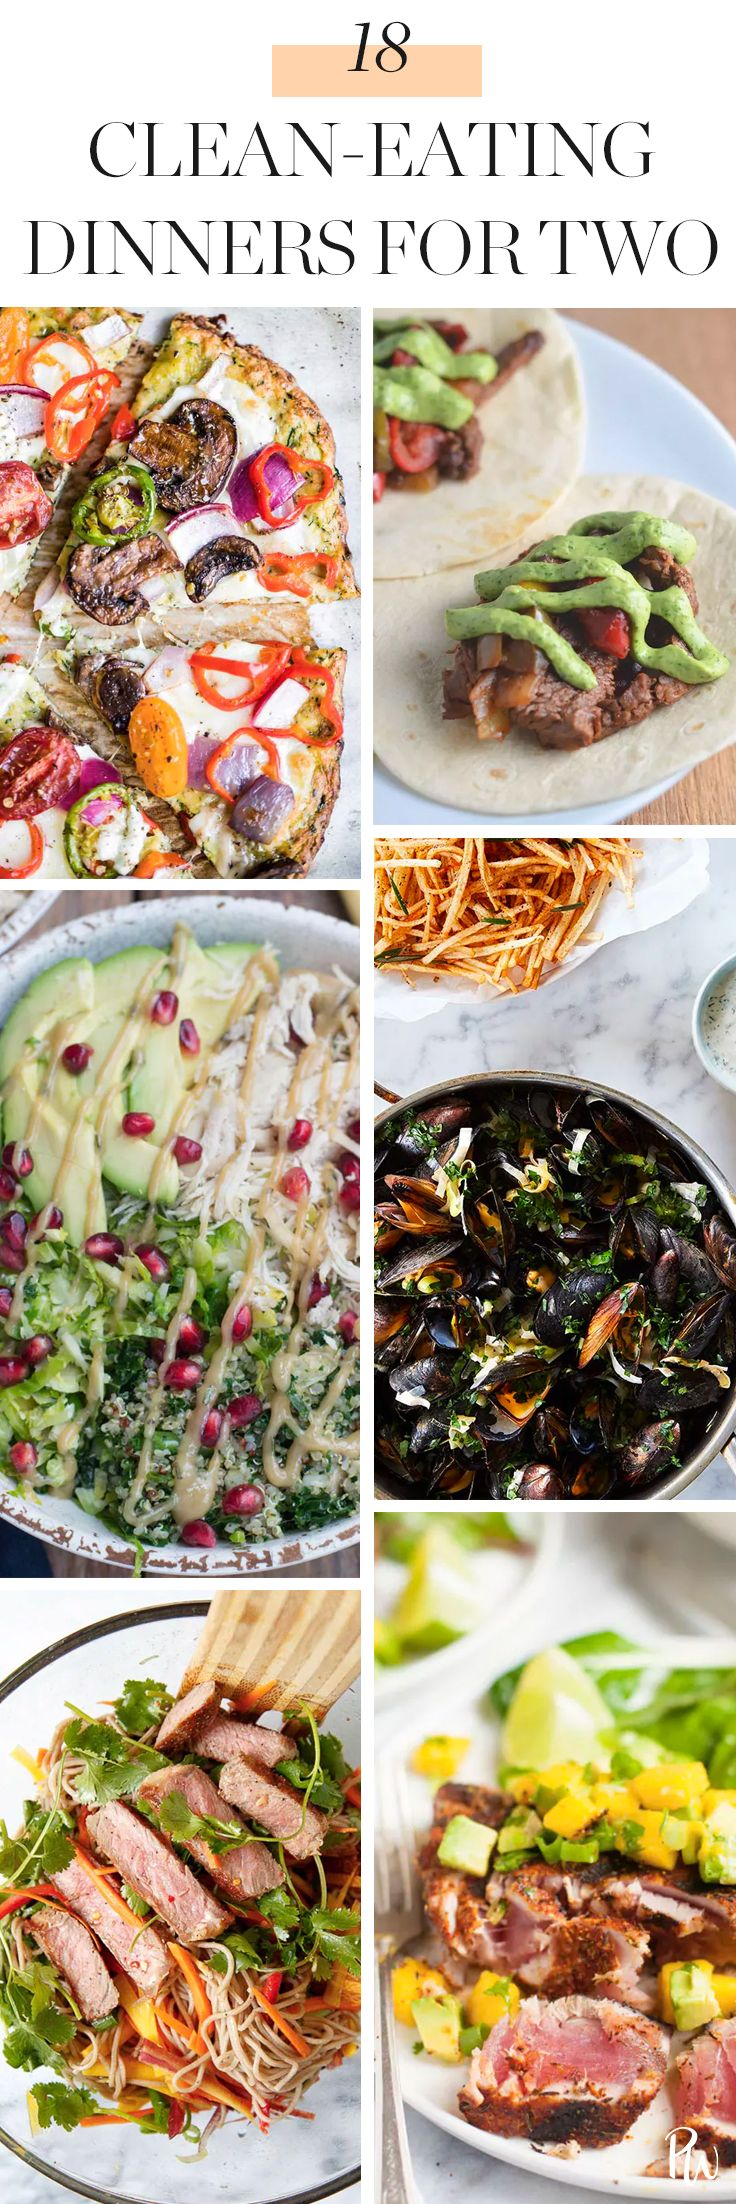 18 Clean-Eating Dinners for Two images